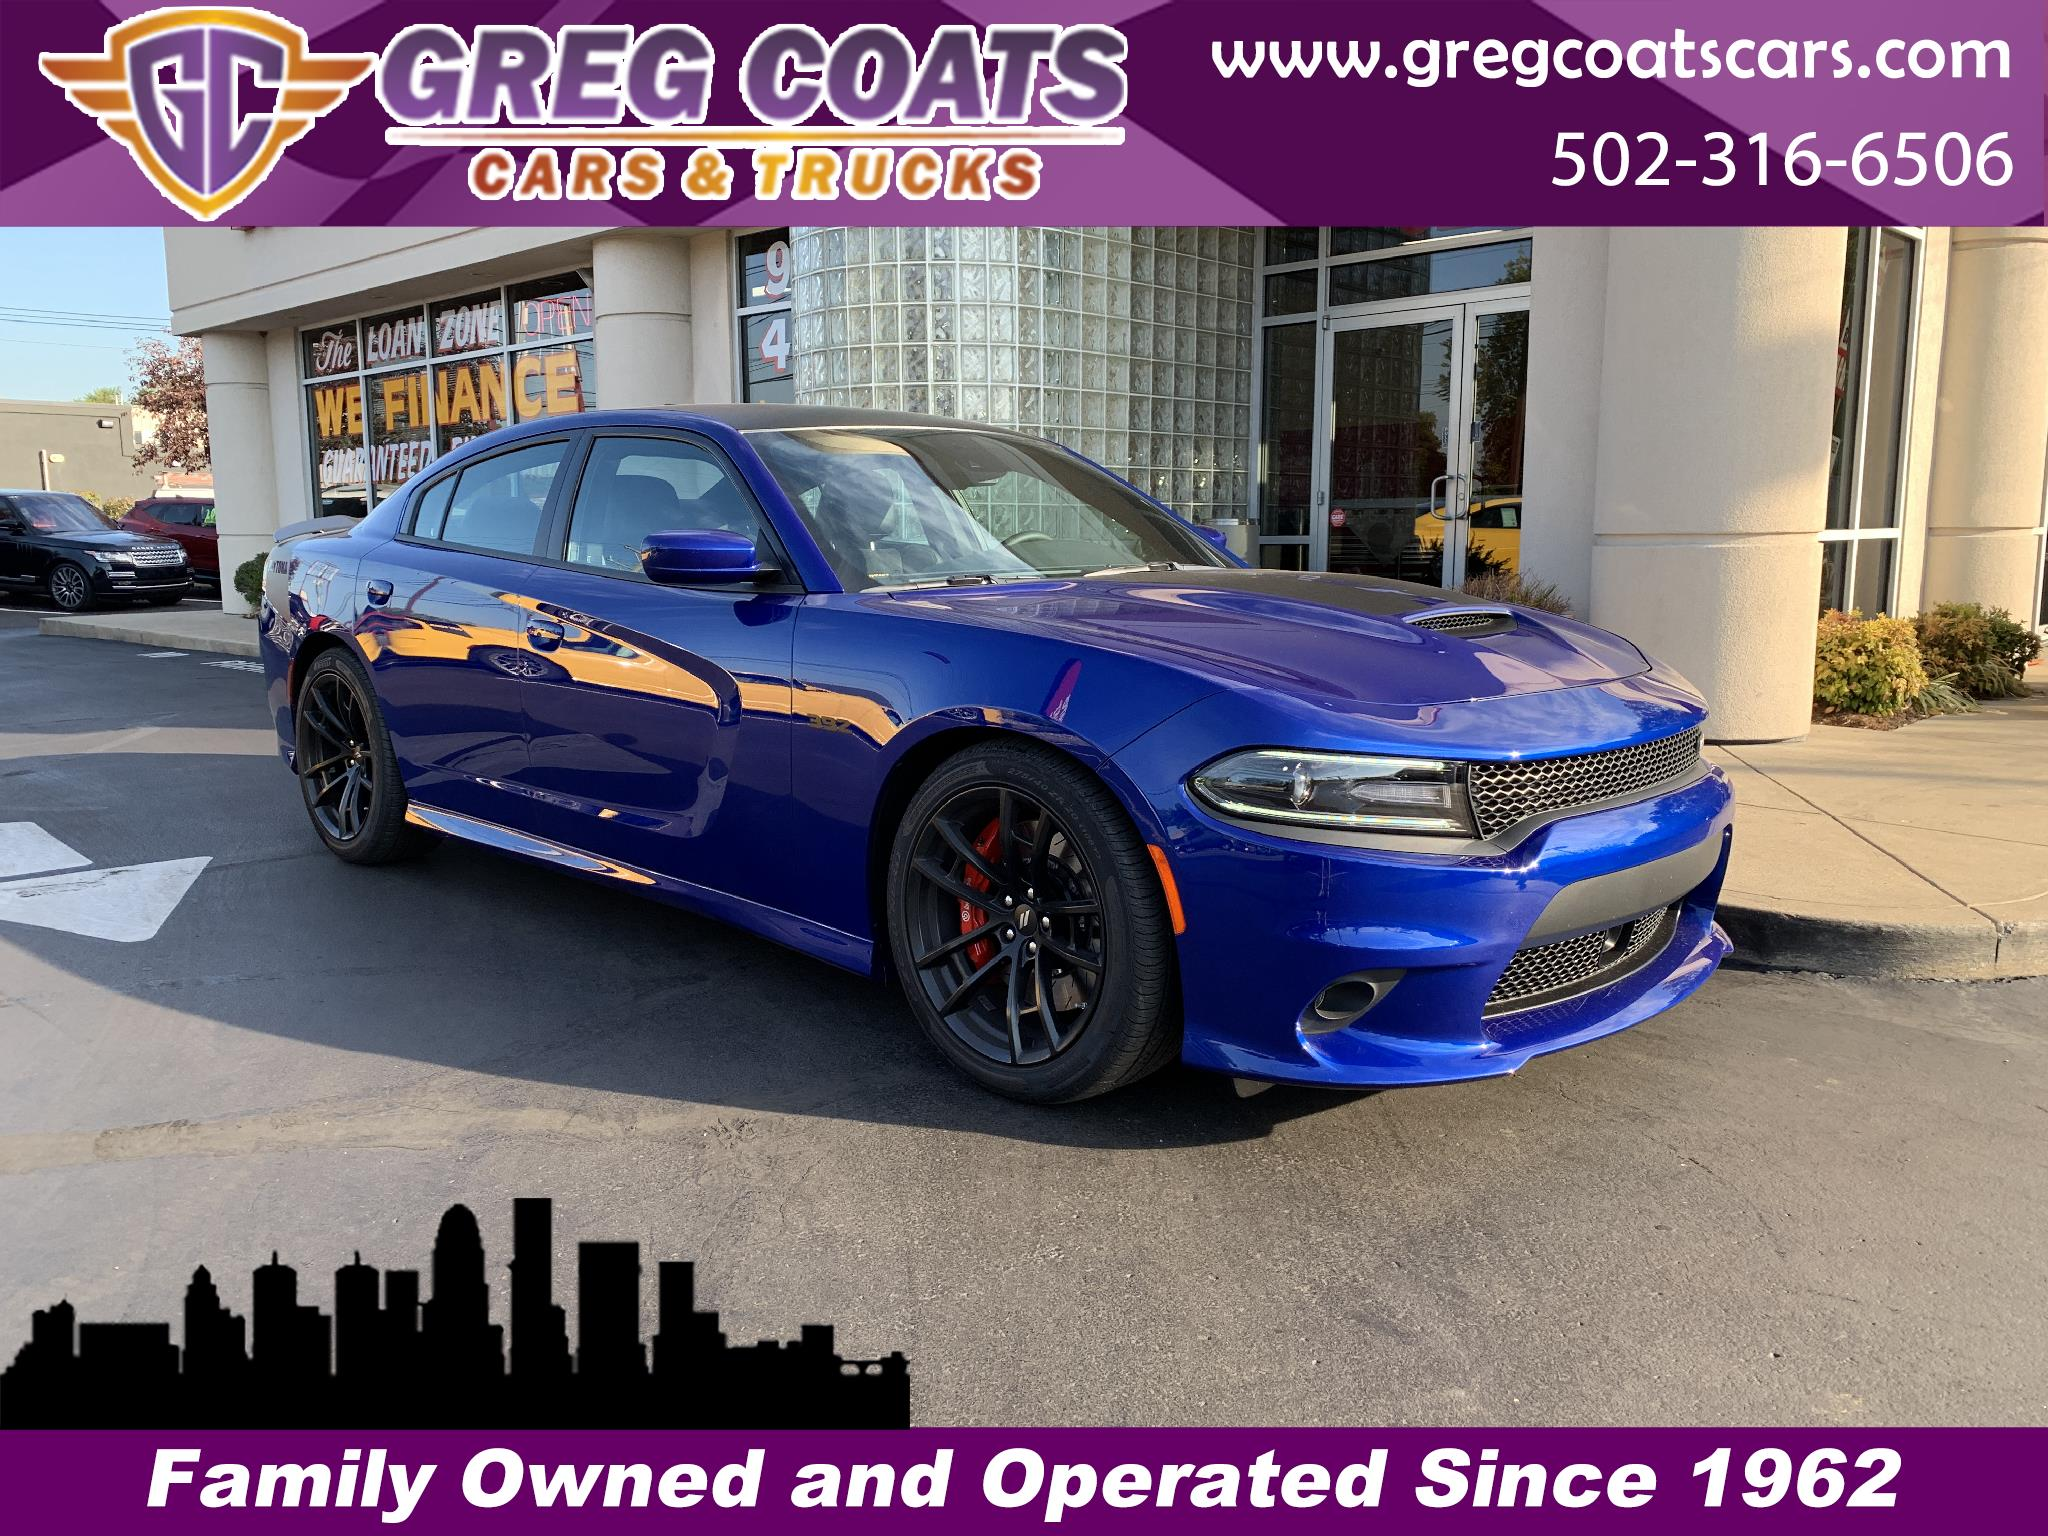 2018 Dodge Charger Daytona 392 RWD